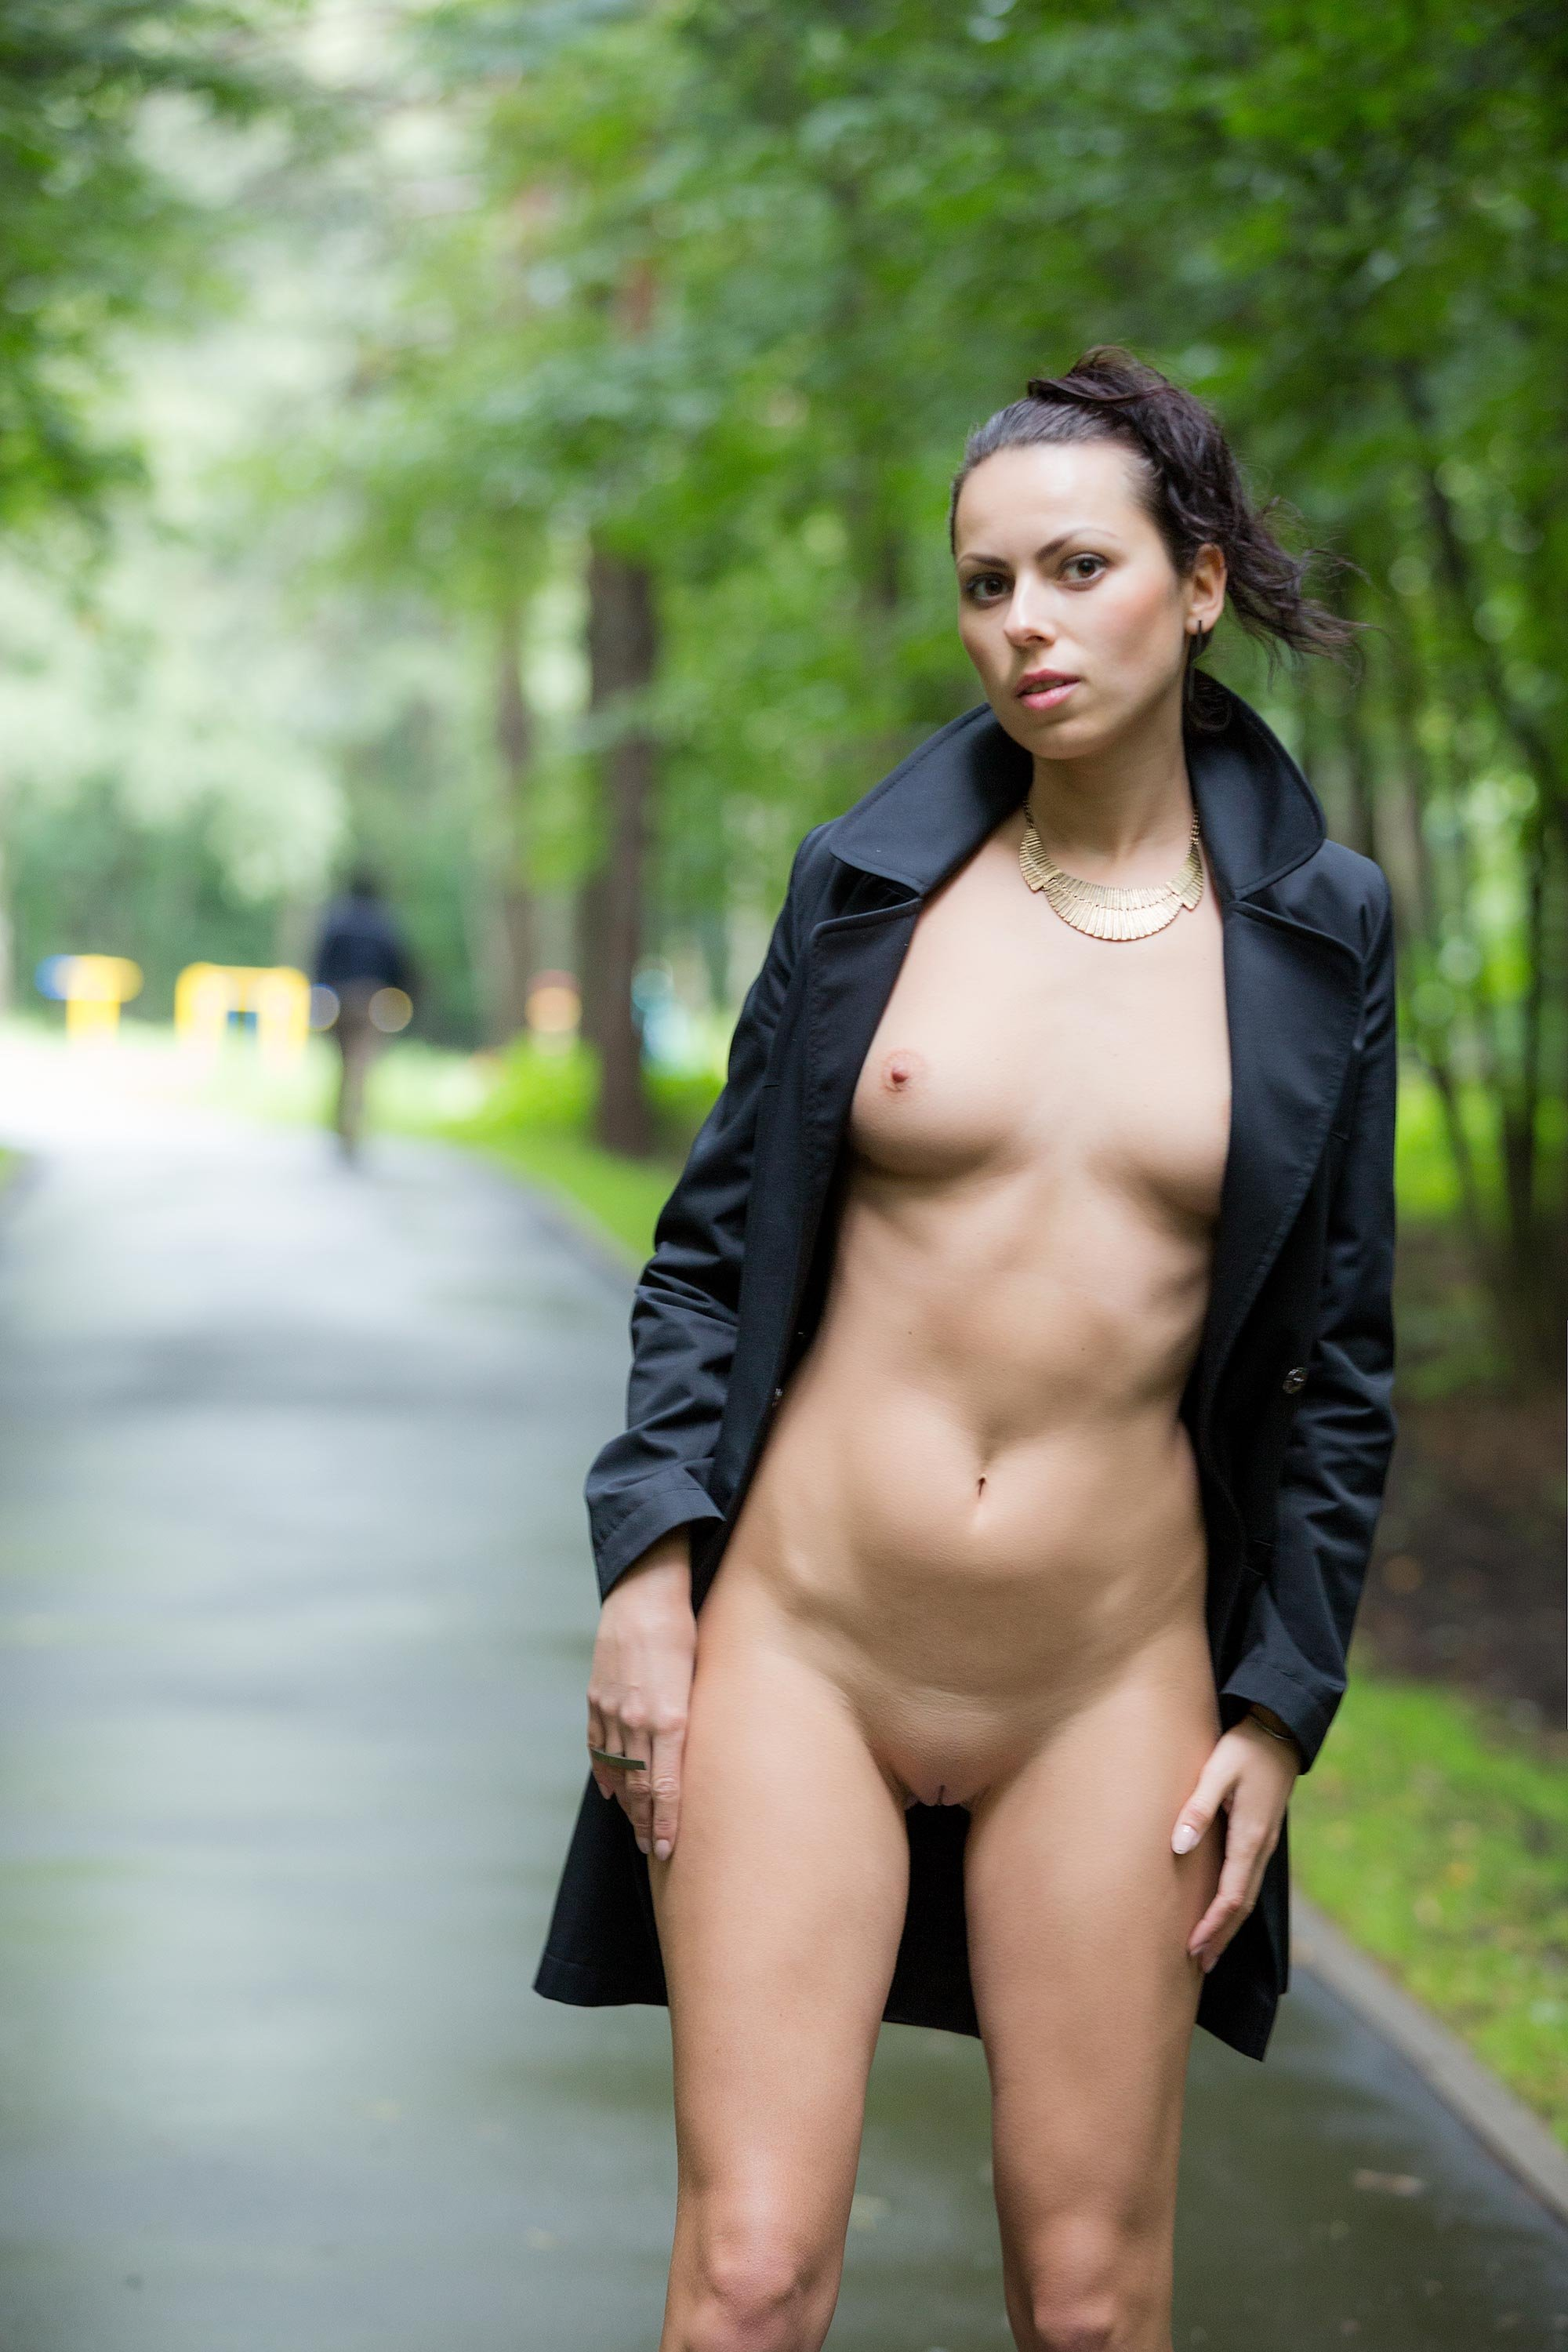 Nude girls in a park 1